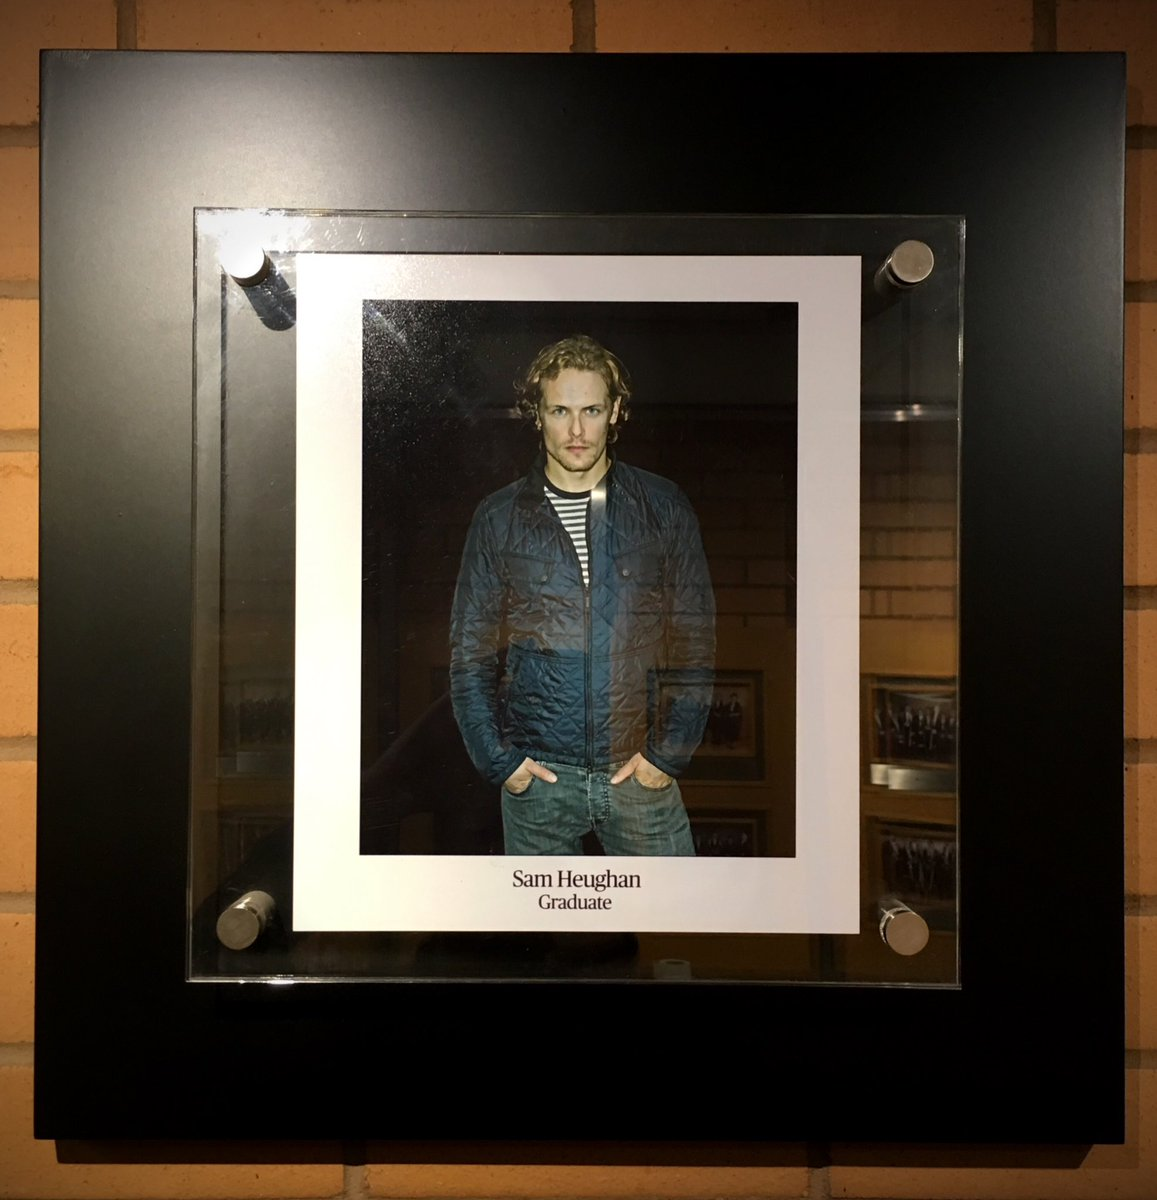 There's a new frame on our 'Wall of Fame', a fantastic portrait of #outlander star @SamHeughan